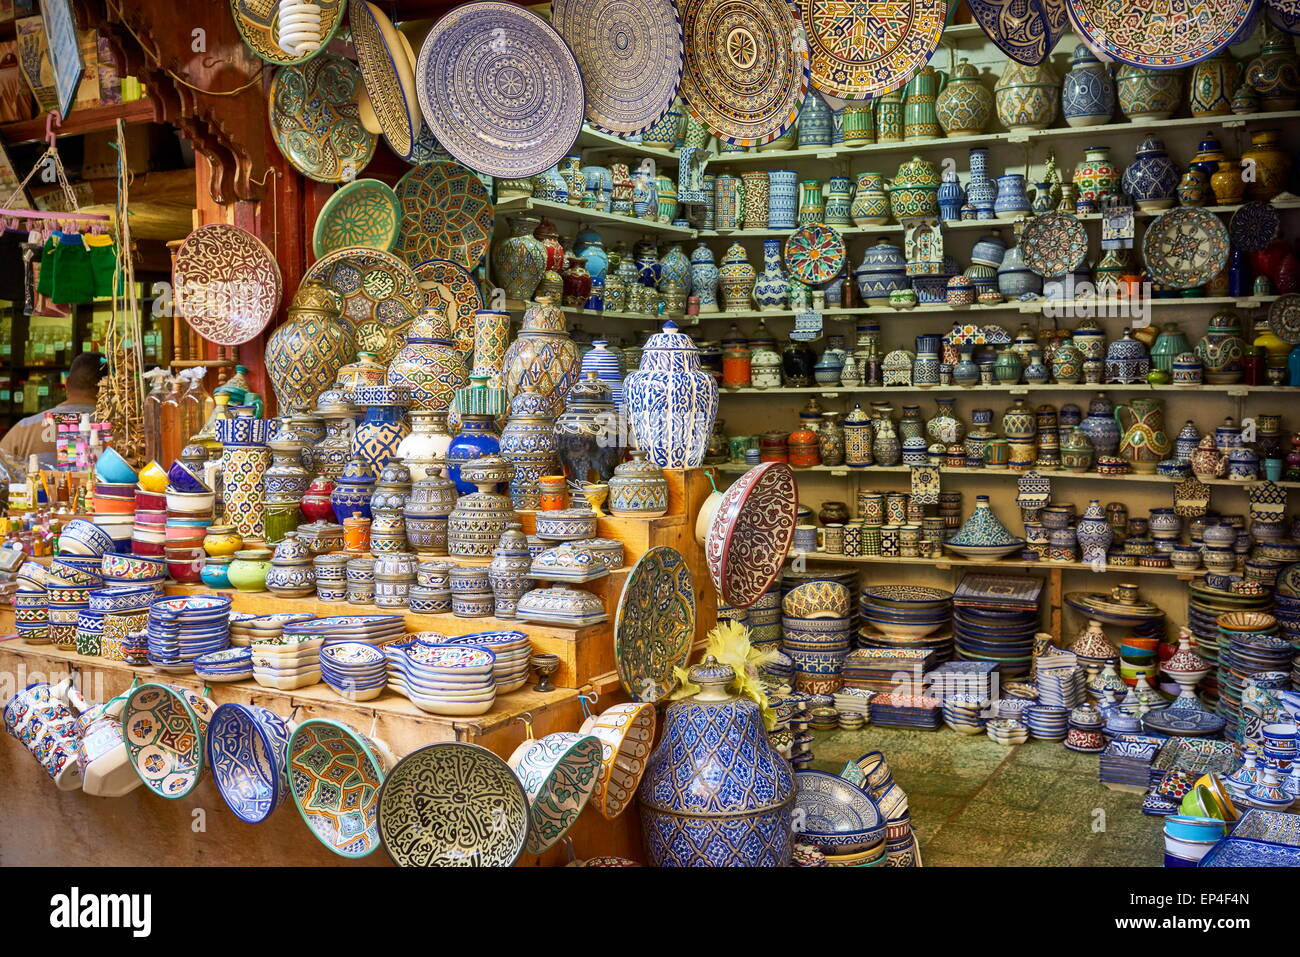 Fez, Souk in Medina, Hand painting ceramic products. Morocco - Stock Image